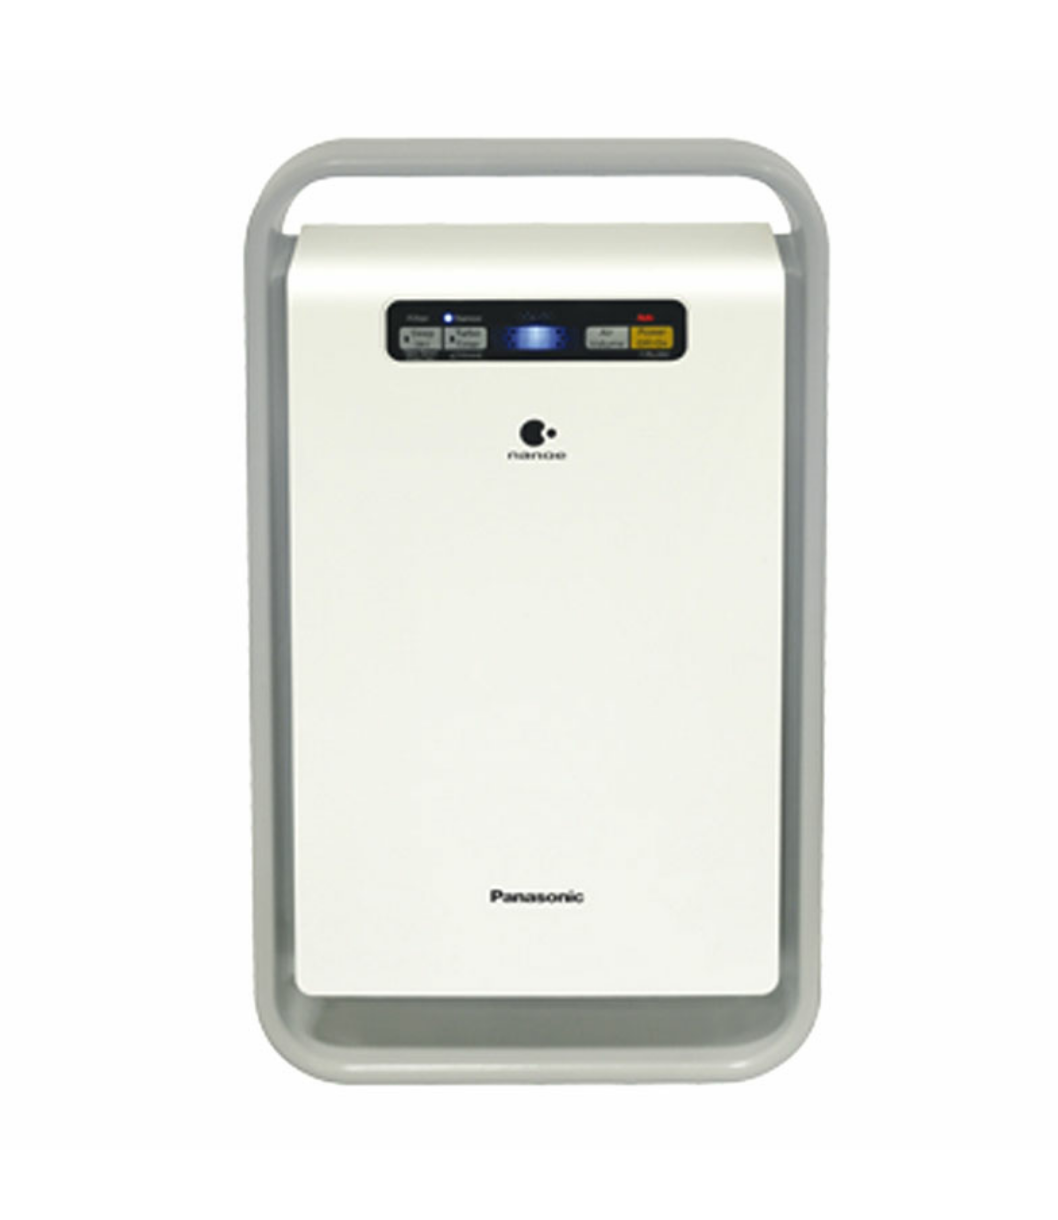 Panasonic Air Purifier F